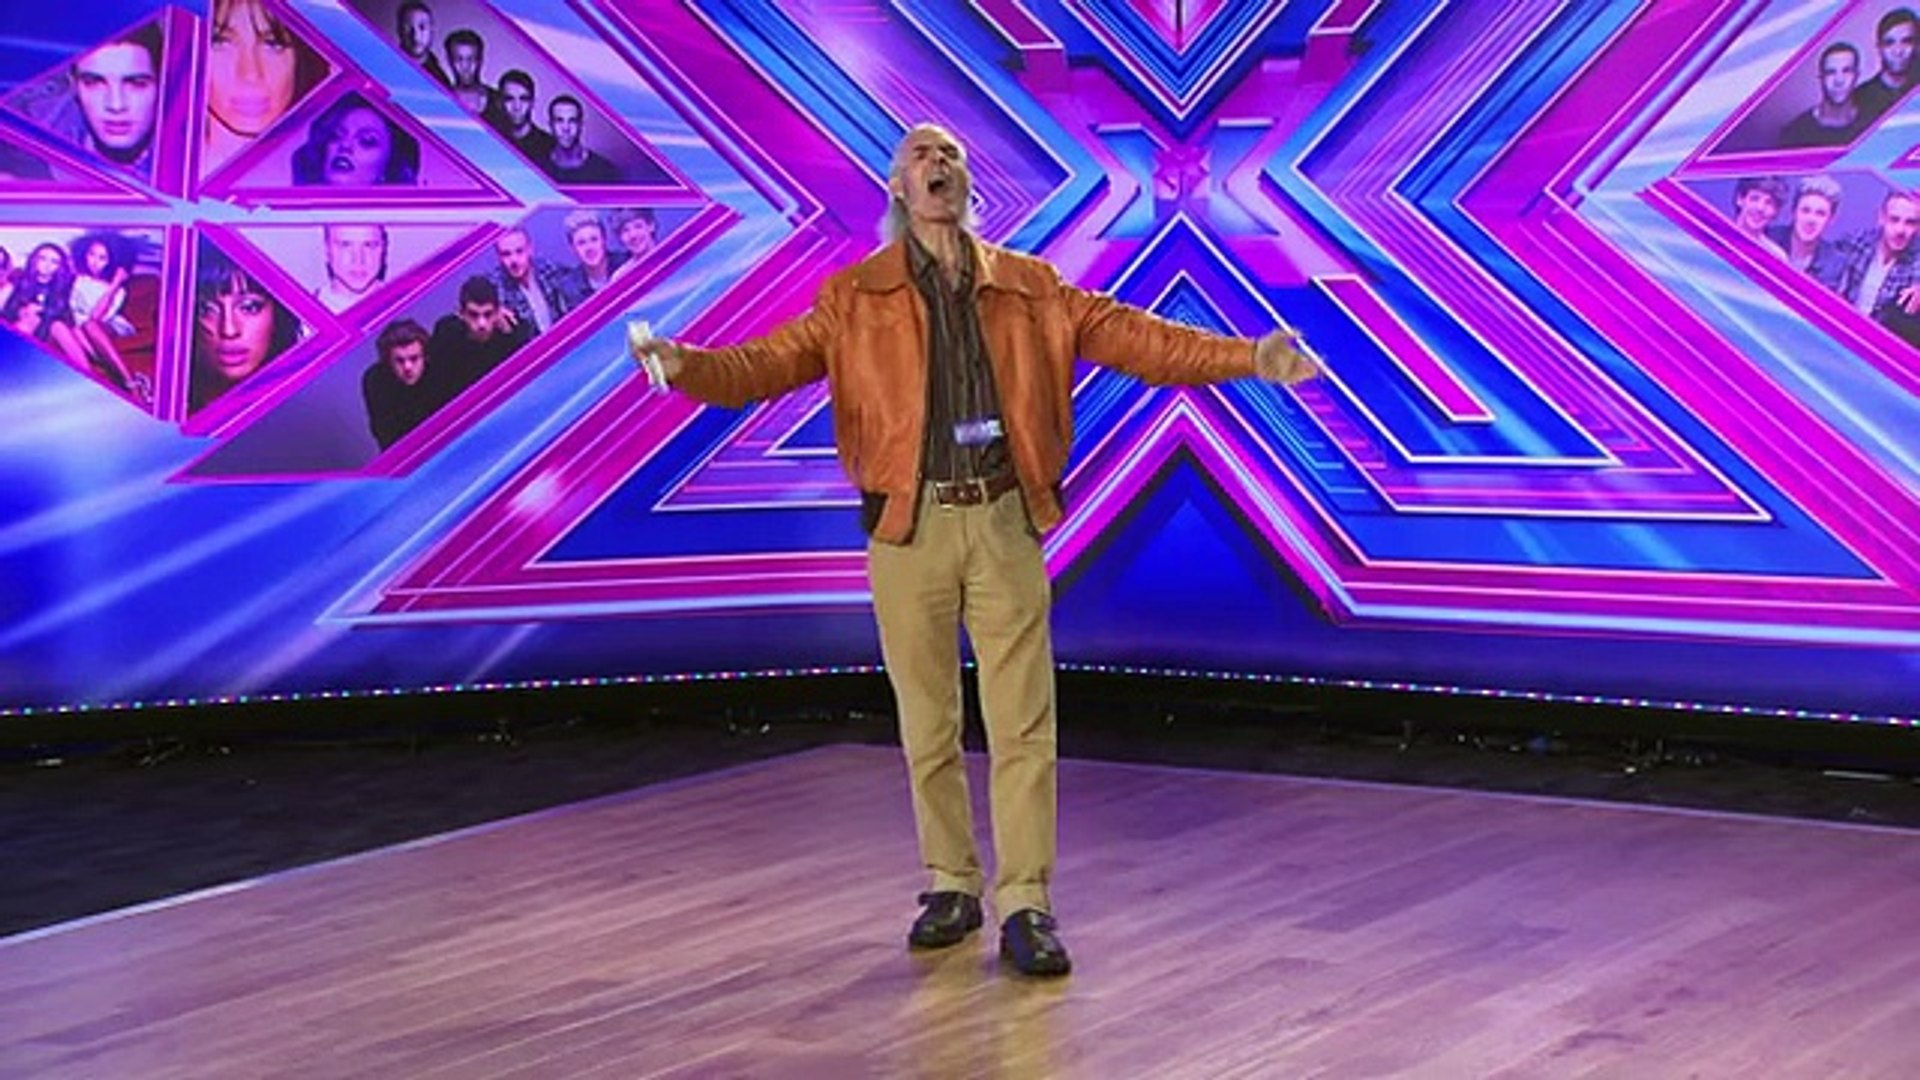 John Evan's Room Audition - Room Auditions Week 2 - The X Factor UK 2014 - OFFICIAL CHANNEL